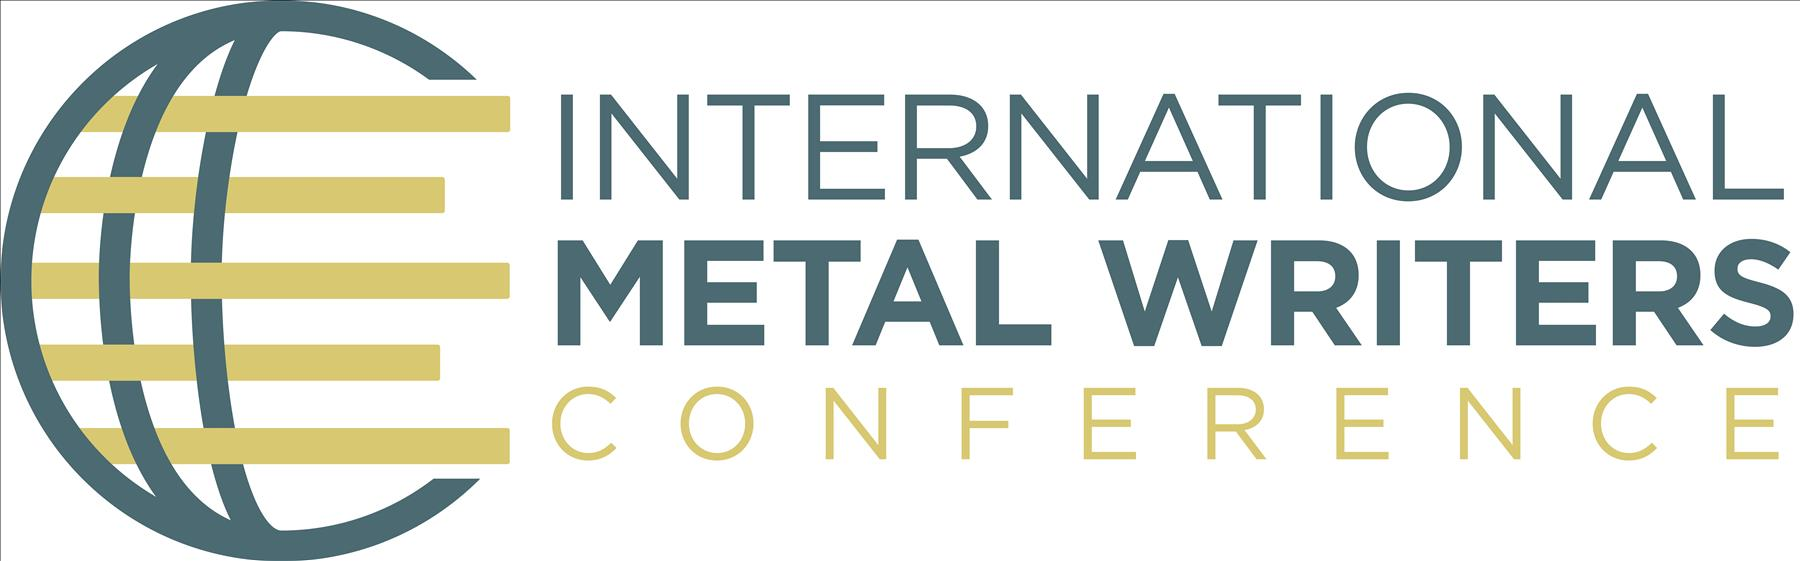 International Metal Writers Conference- Vancouver May 28-29th, 2017